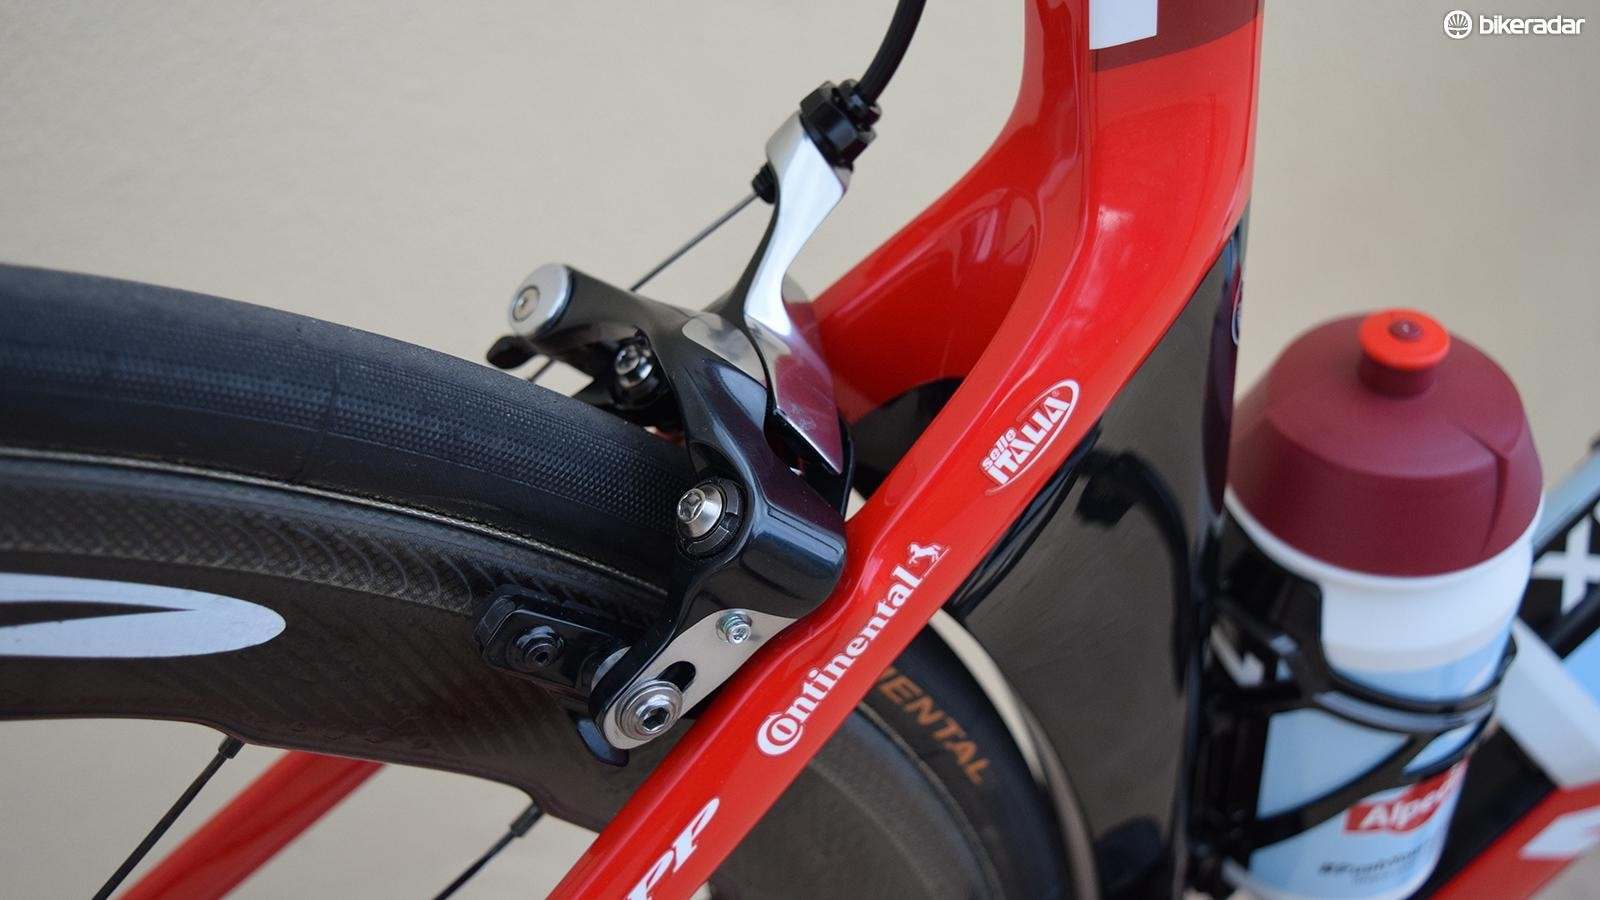 Pros had previously been forced to use Shimano's direct-mount brakes or others